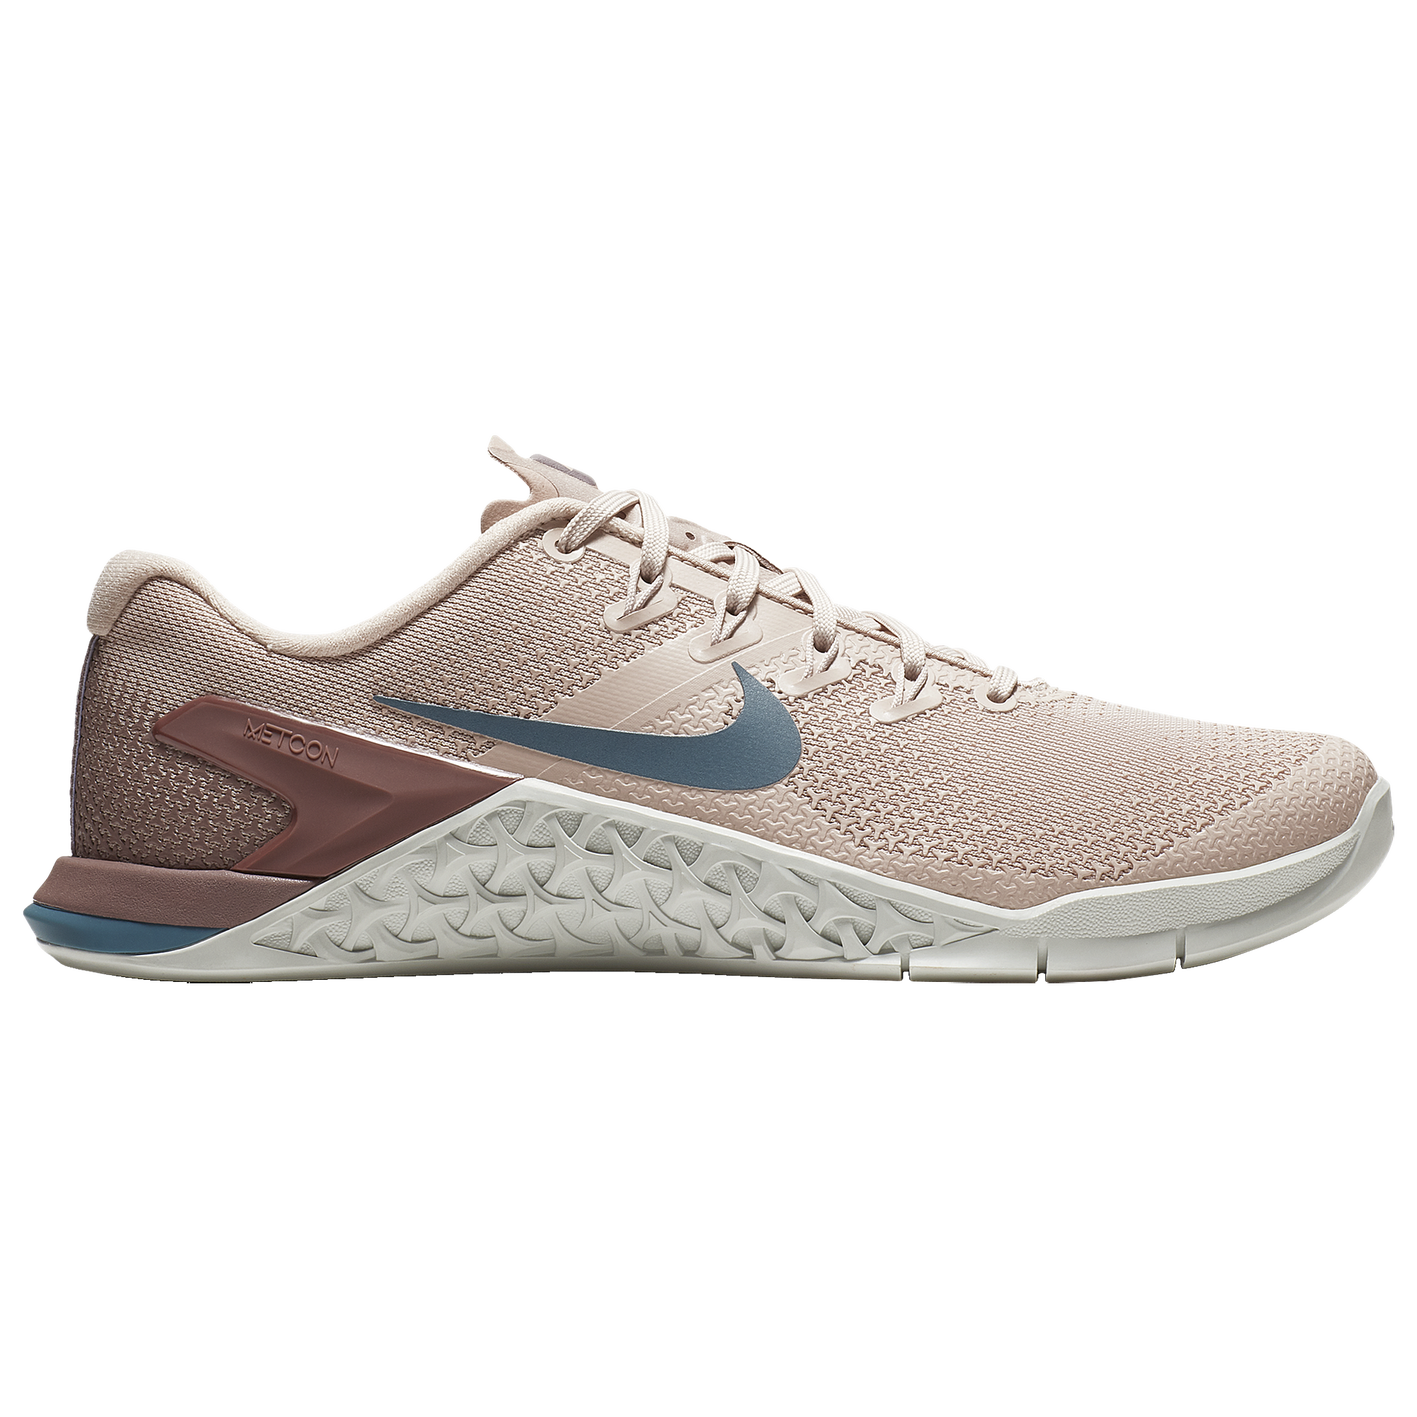 c5dc0e842c0 Nike Metcon 4 - Women s - Training - Shoes - Particle Beige ...